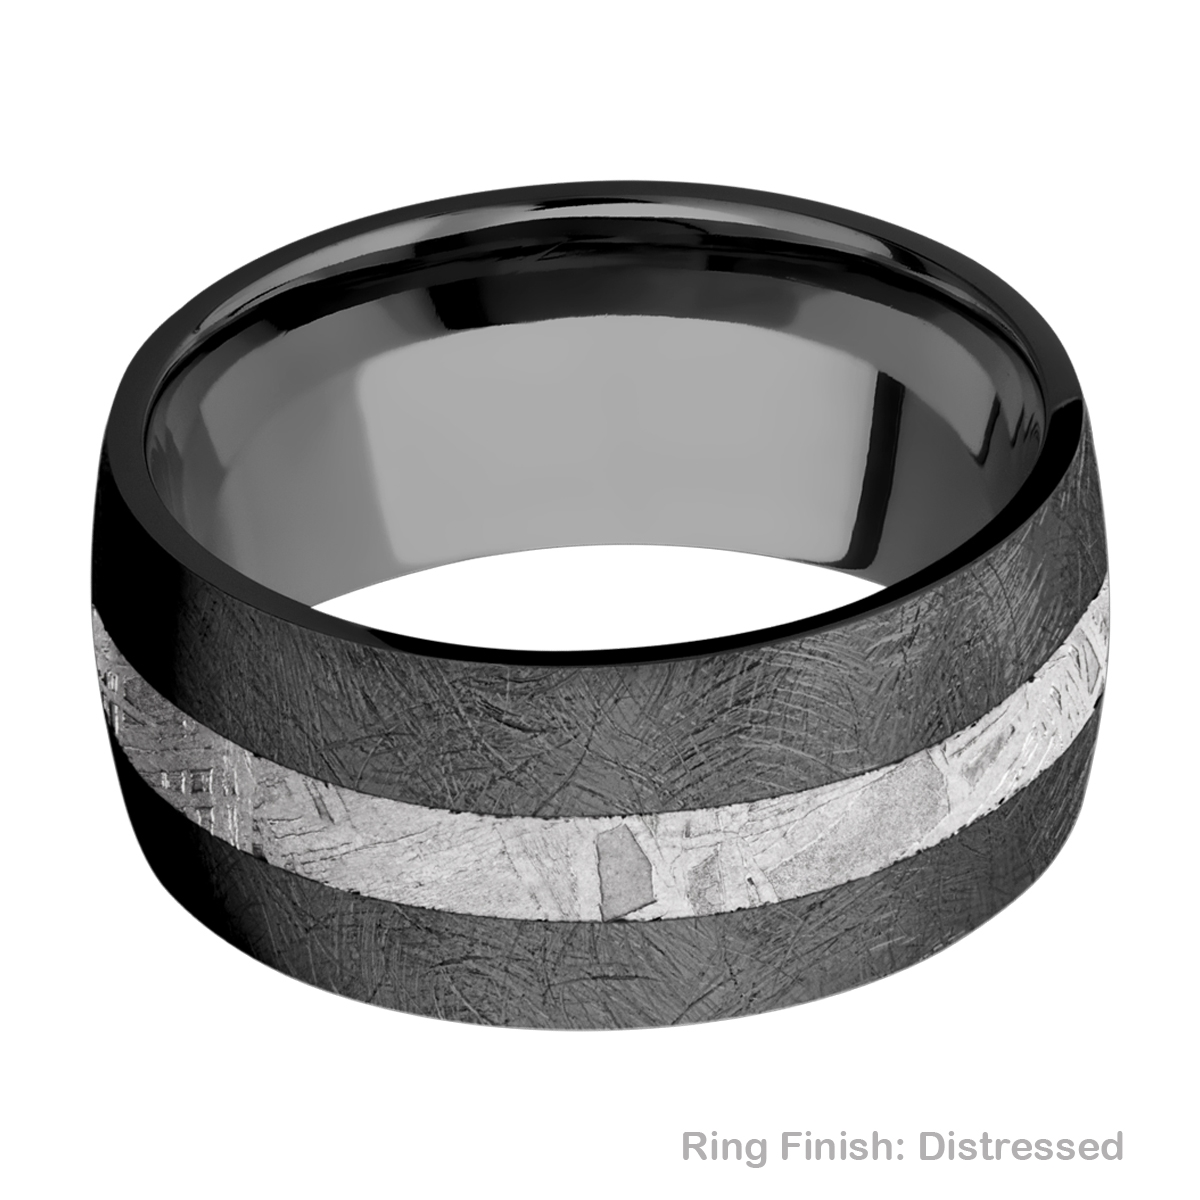 Lashbrook Z10D13/METEORITE Zirconium Wedding Ring or Band